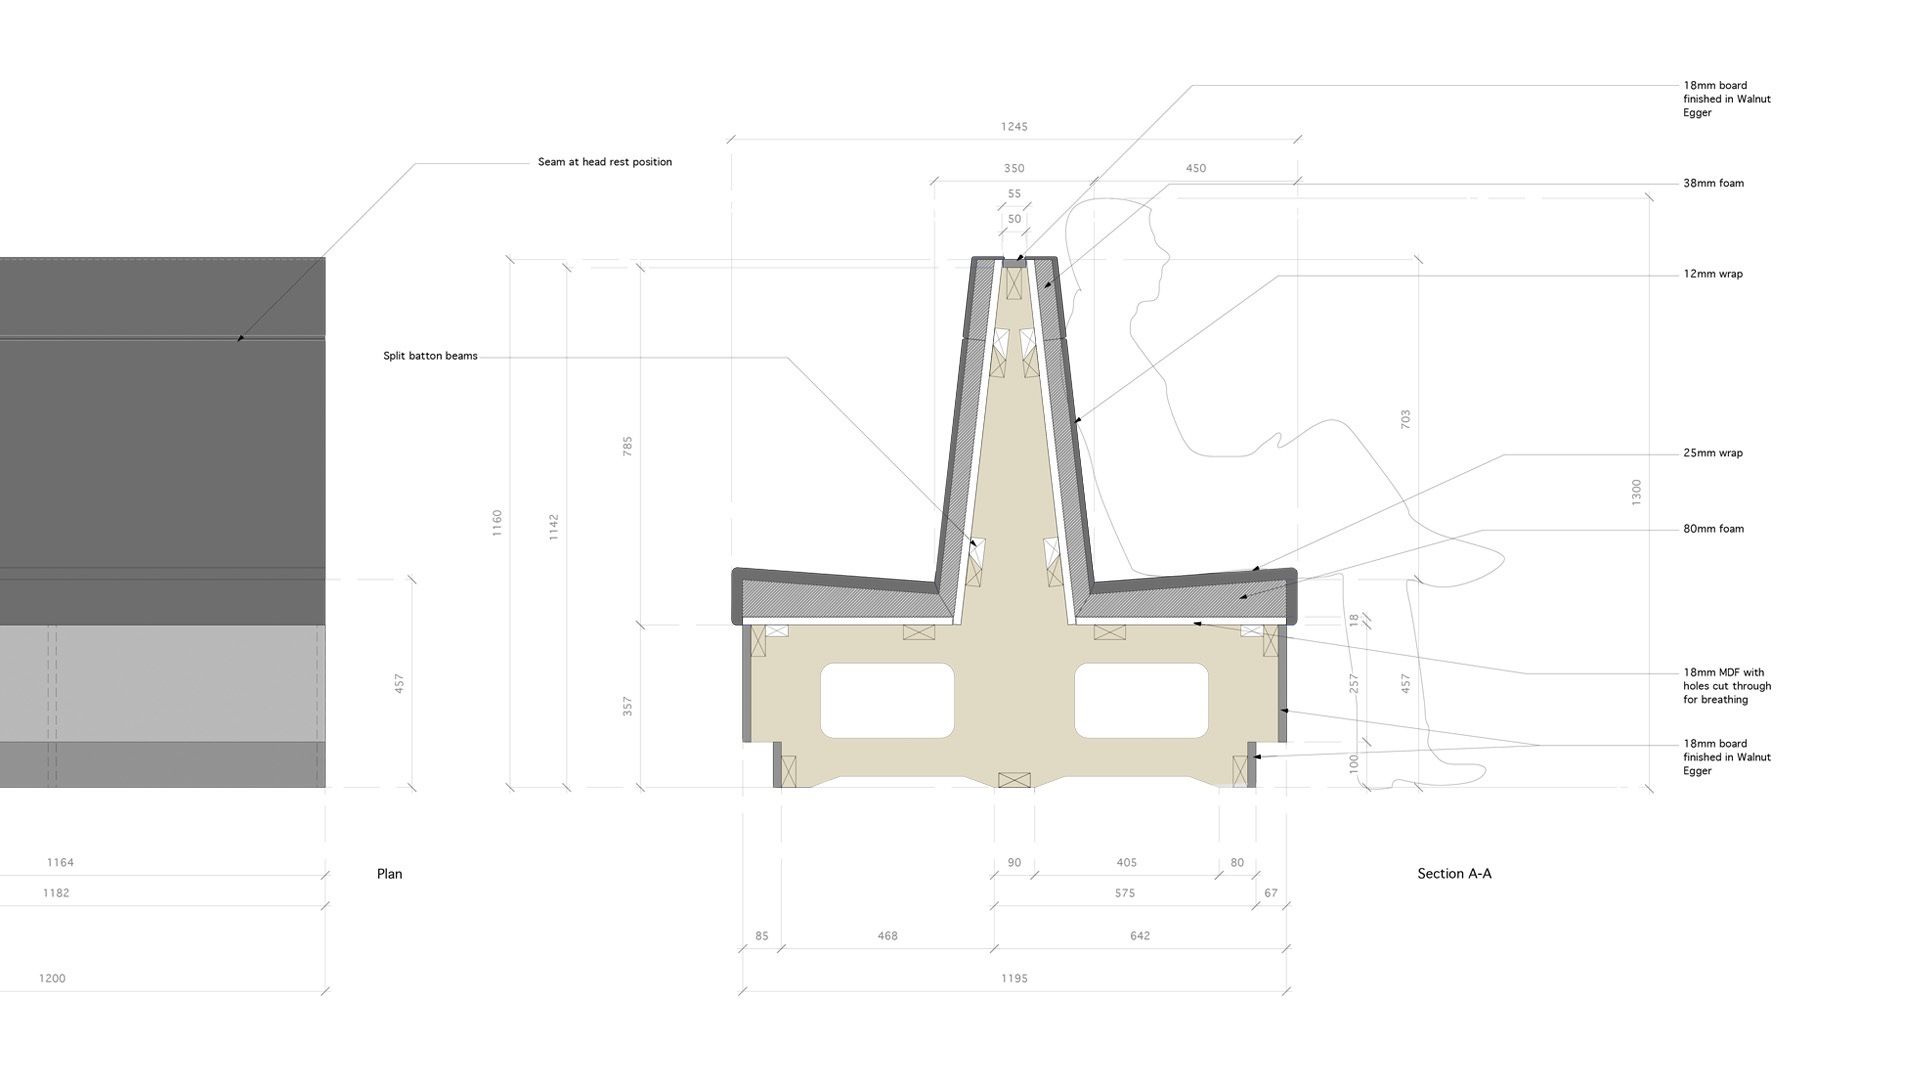 Technical drawing for Aberdeen Royal Infirmary canteen